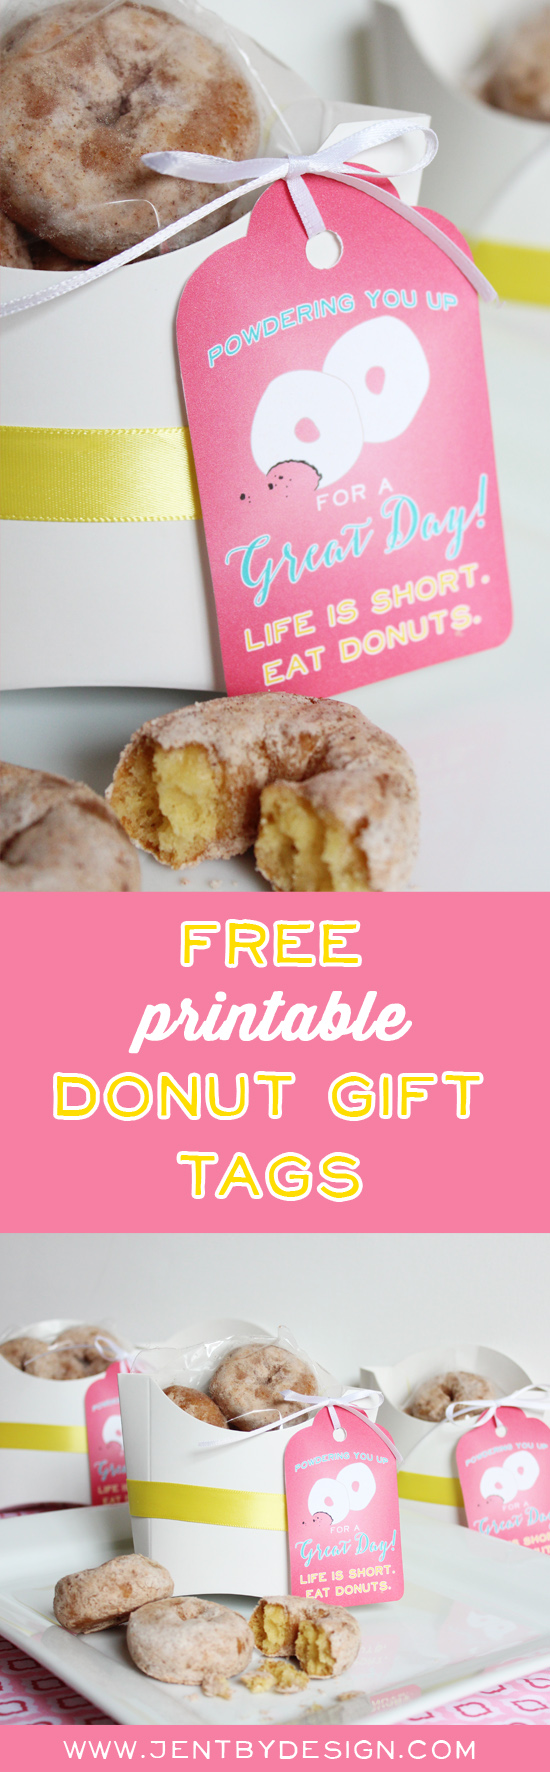 Donut Gift Tags for National Donut Day